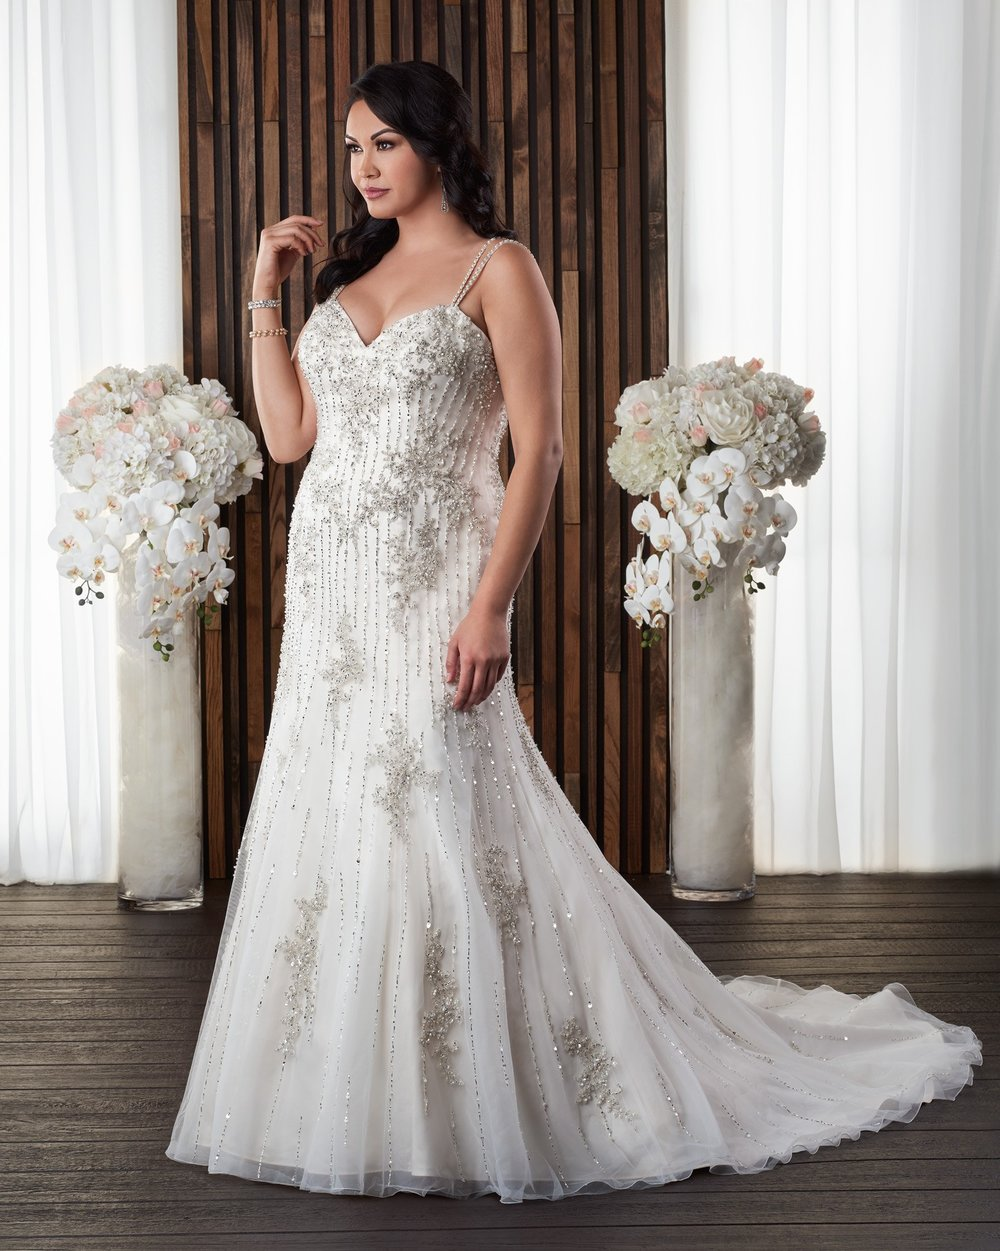 BonnyBridal-BridesbyYoung-PlusSizeWeddingDress-1716.jpg